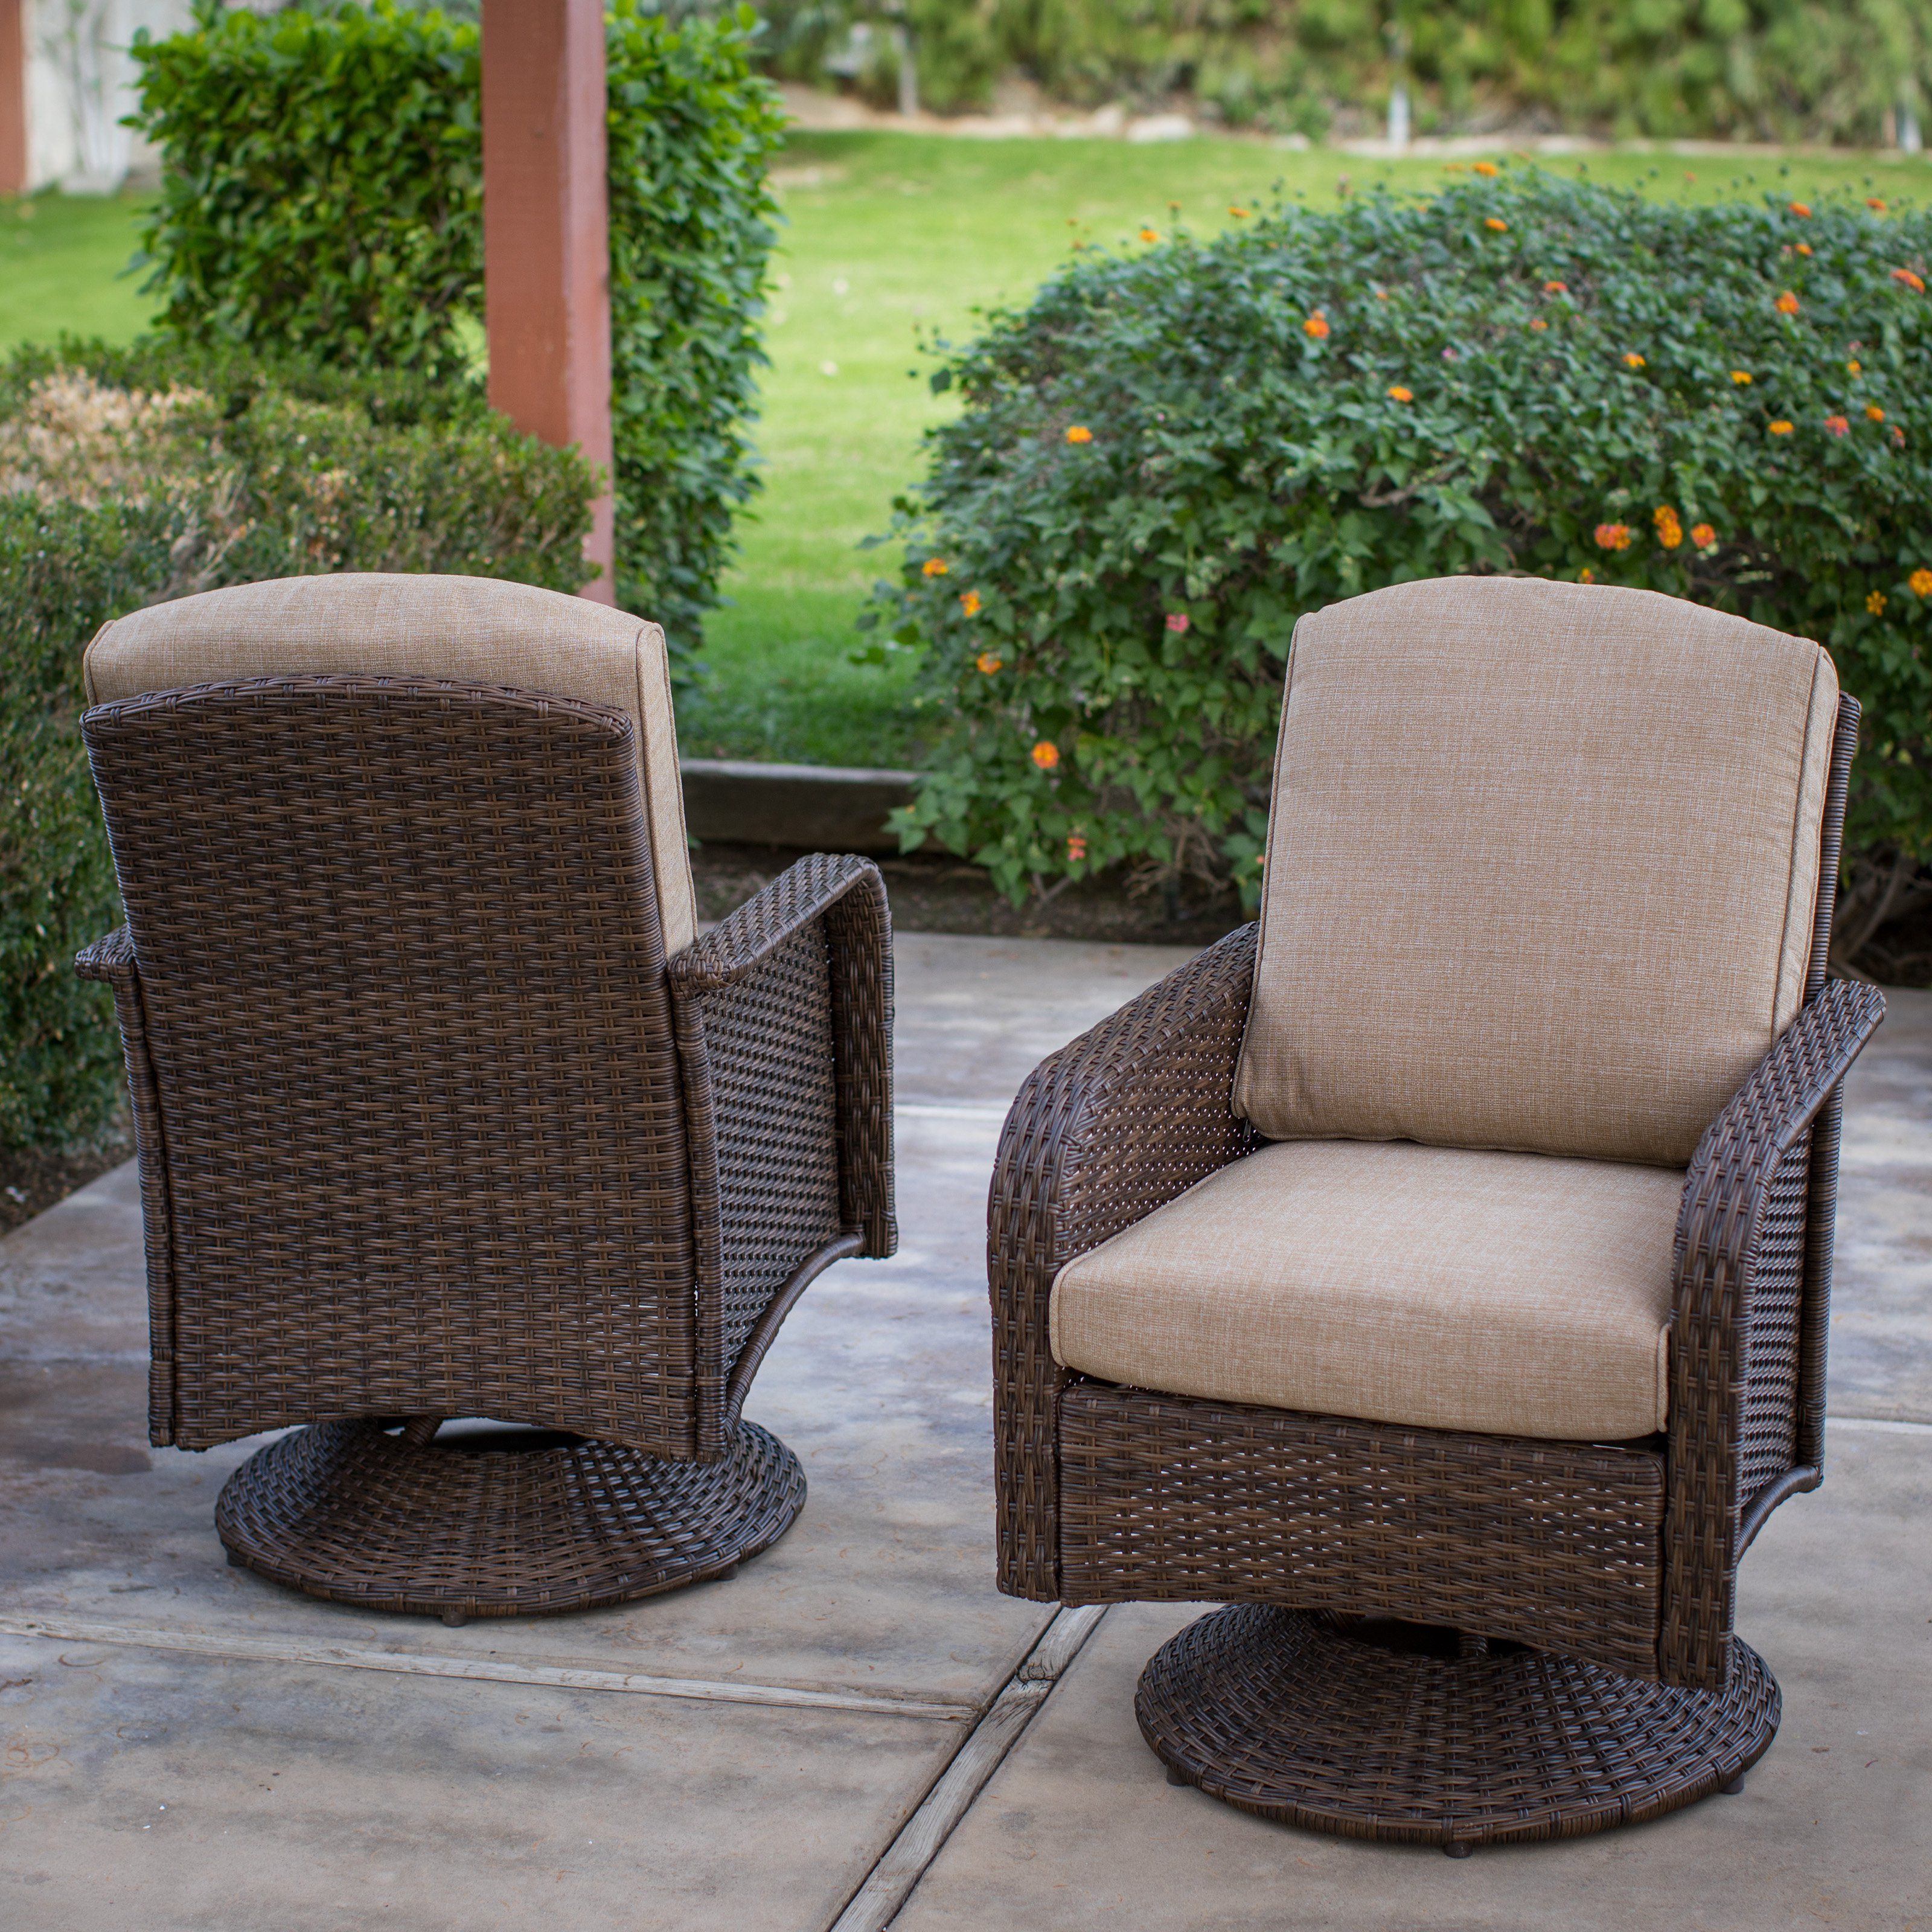 863f84220d3d162a7b52af86b5f9c97c - Better Homes And Gardens Mckinley Crossing All Motion Chair